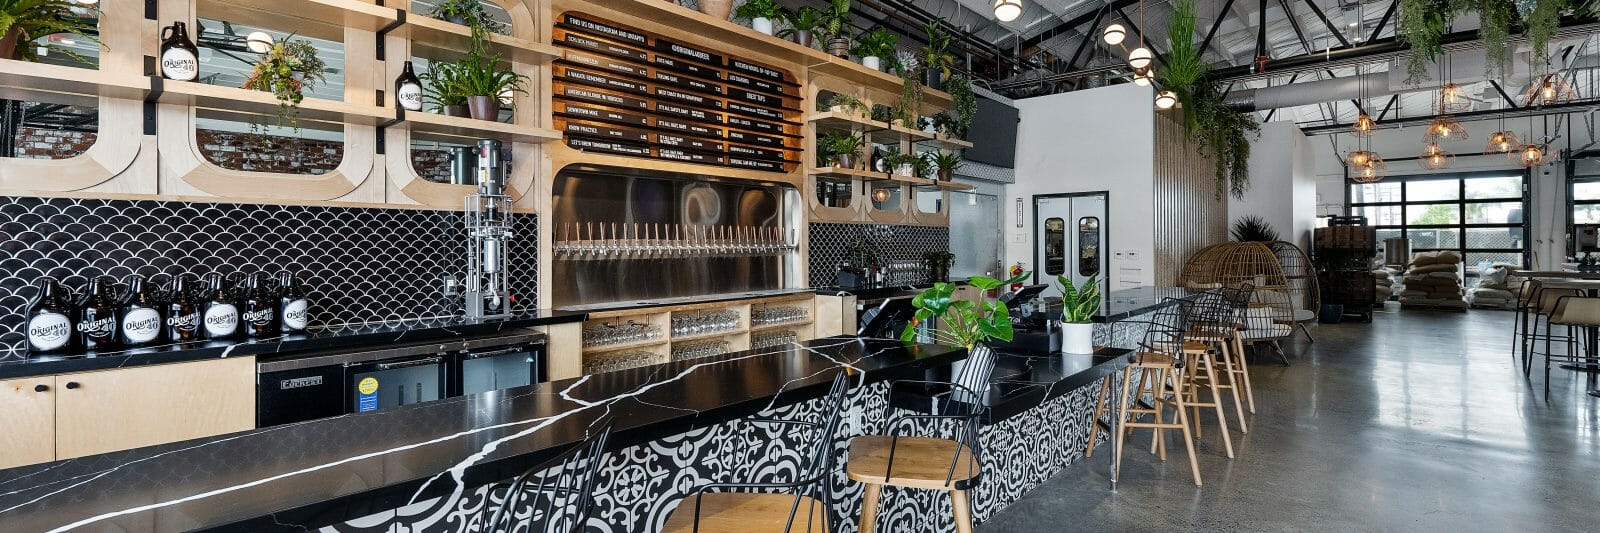 Modern Bar in restaurant. Plants line the walls of the bar, beer is tapped up to the levers and the seats are empty and awaiting guests